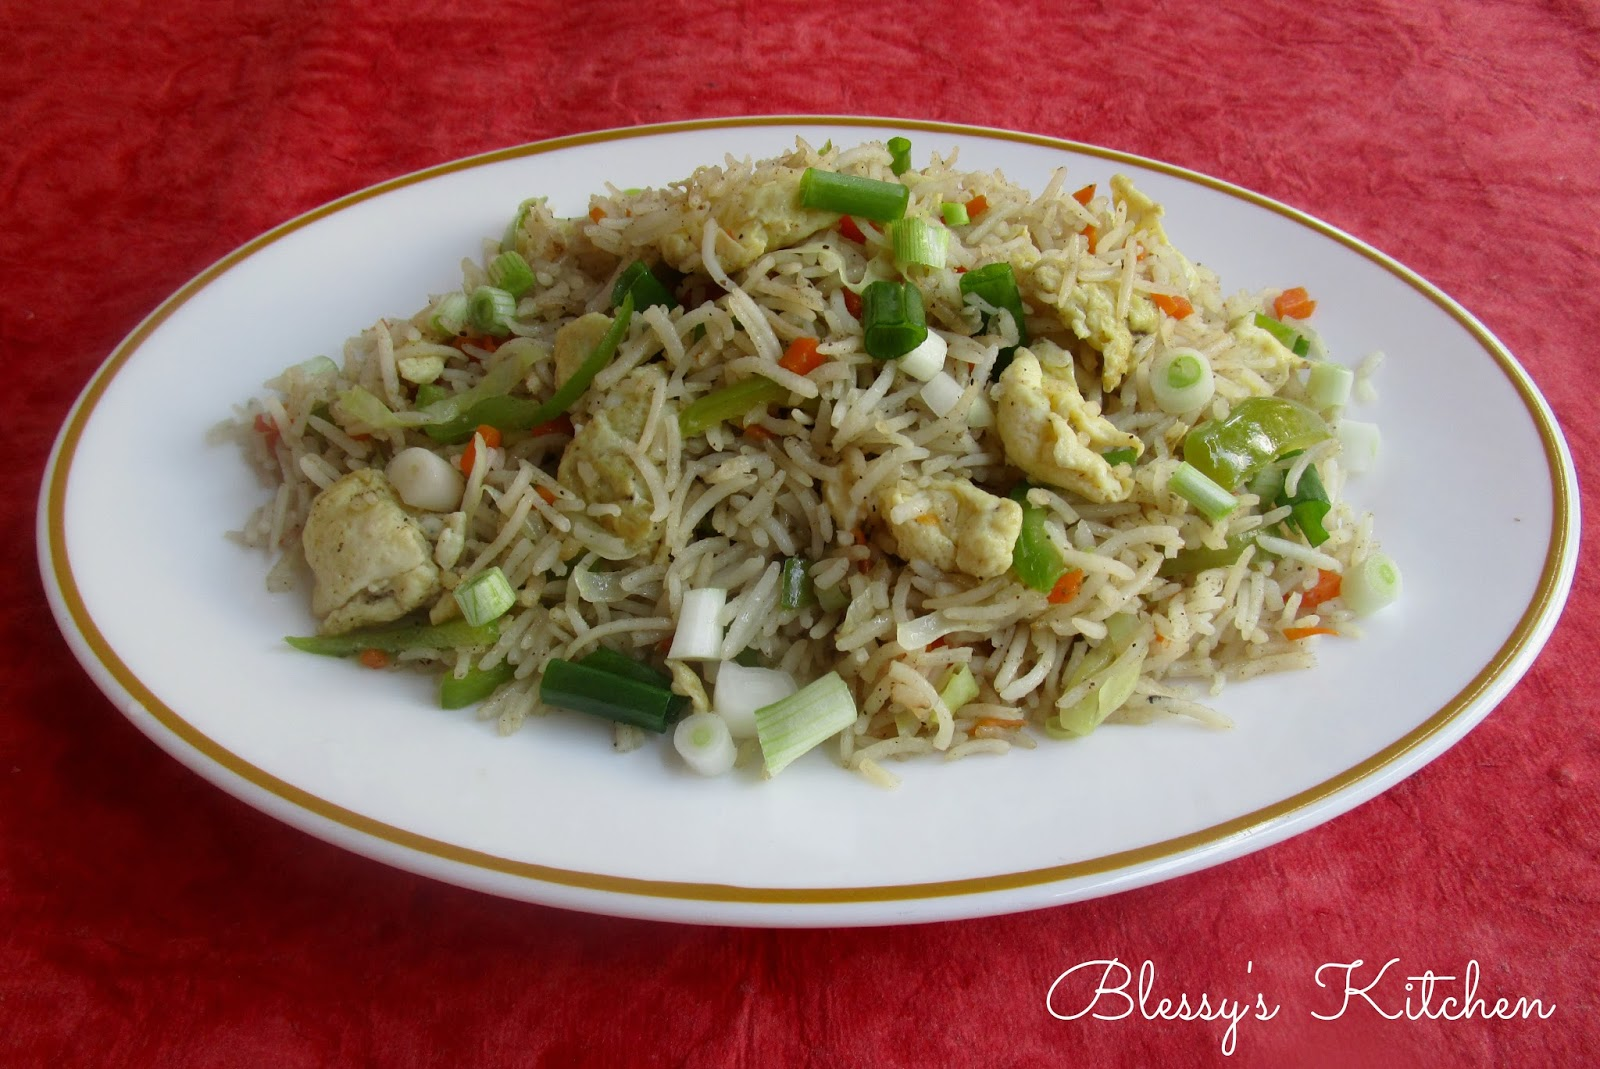 Blessys kitchen egg fried rice egg fried rice is a quick and easy recipe one can make the fried rice with left over rice important things to be noted when making fried rice is to have ccuart Choice Image